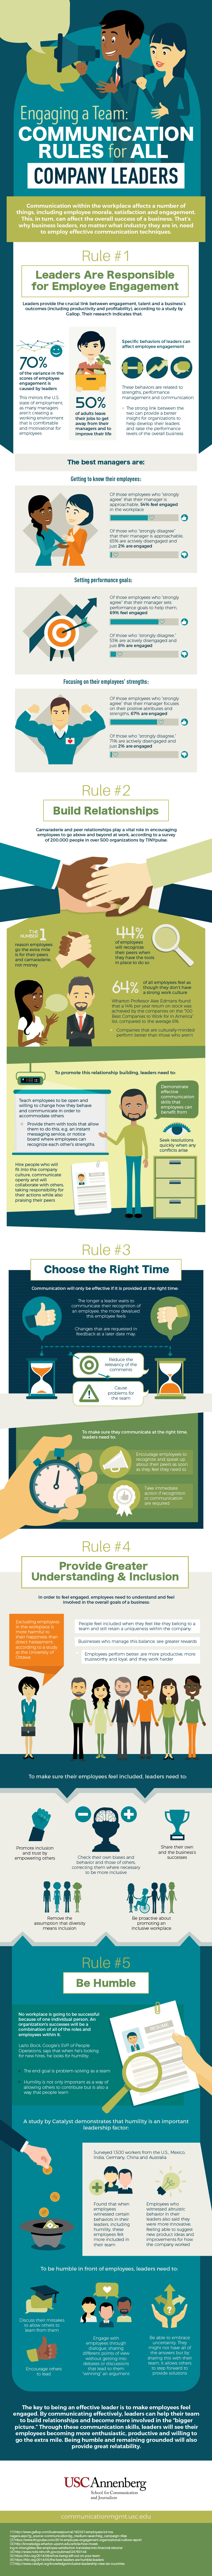 An infographic about effective communication in the workplace by the University of Southern California.